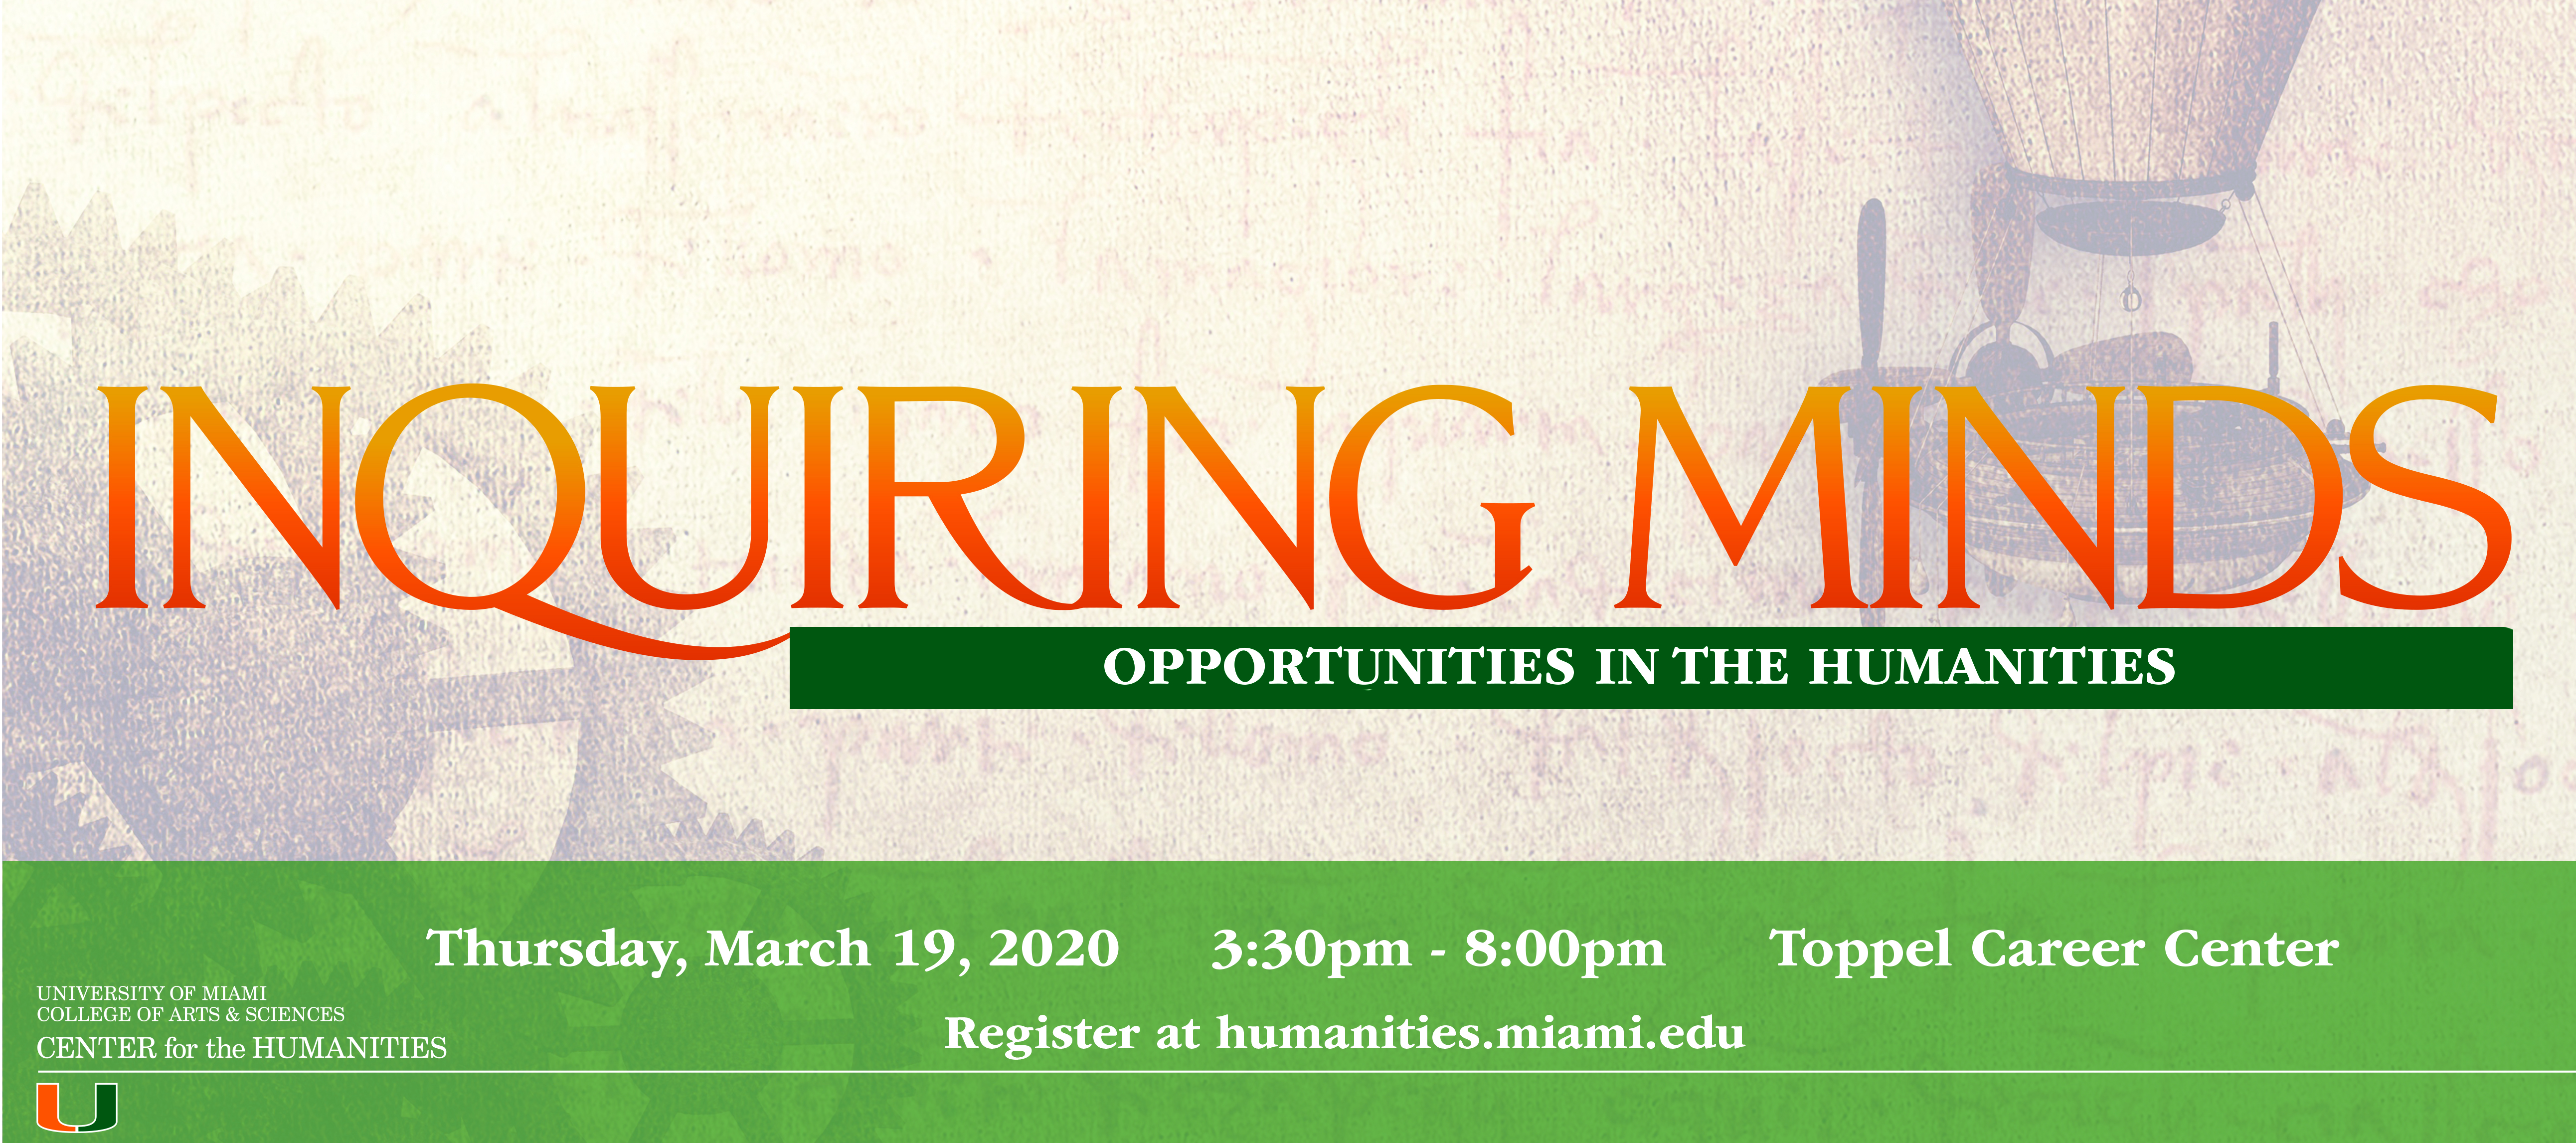 Inquiring Minds Center For The Humanities University Of Miami